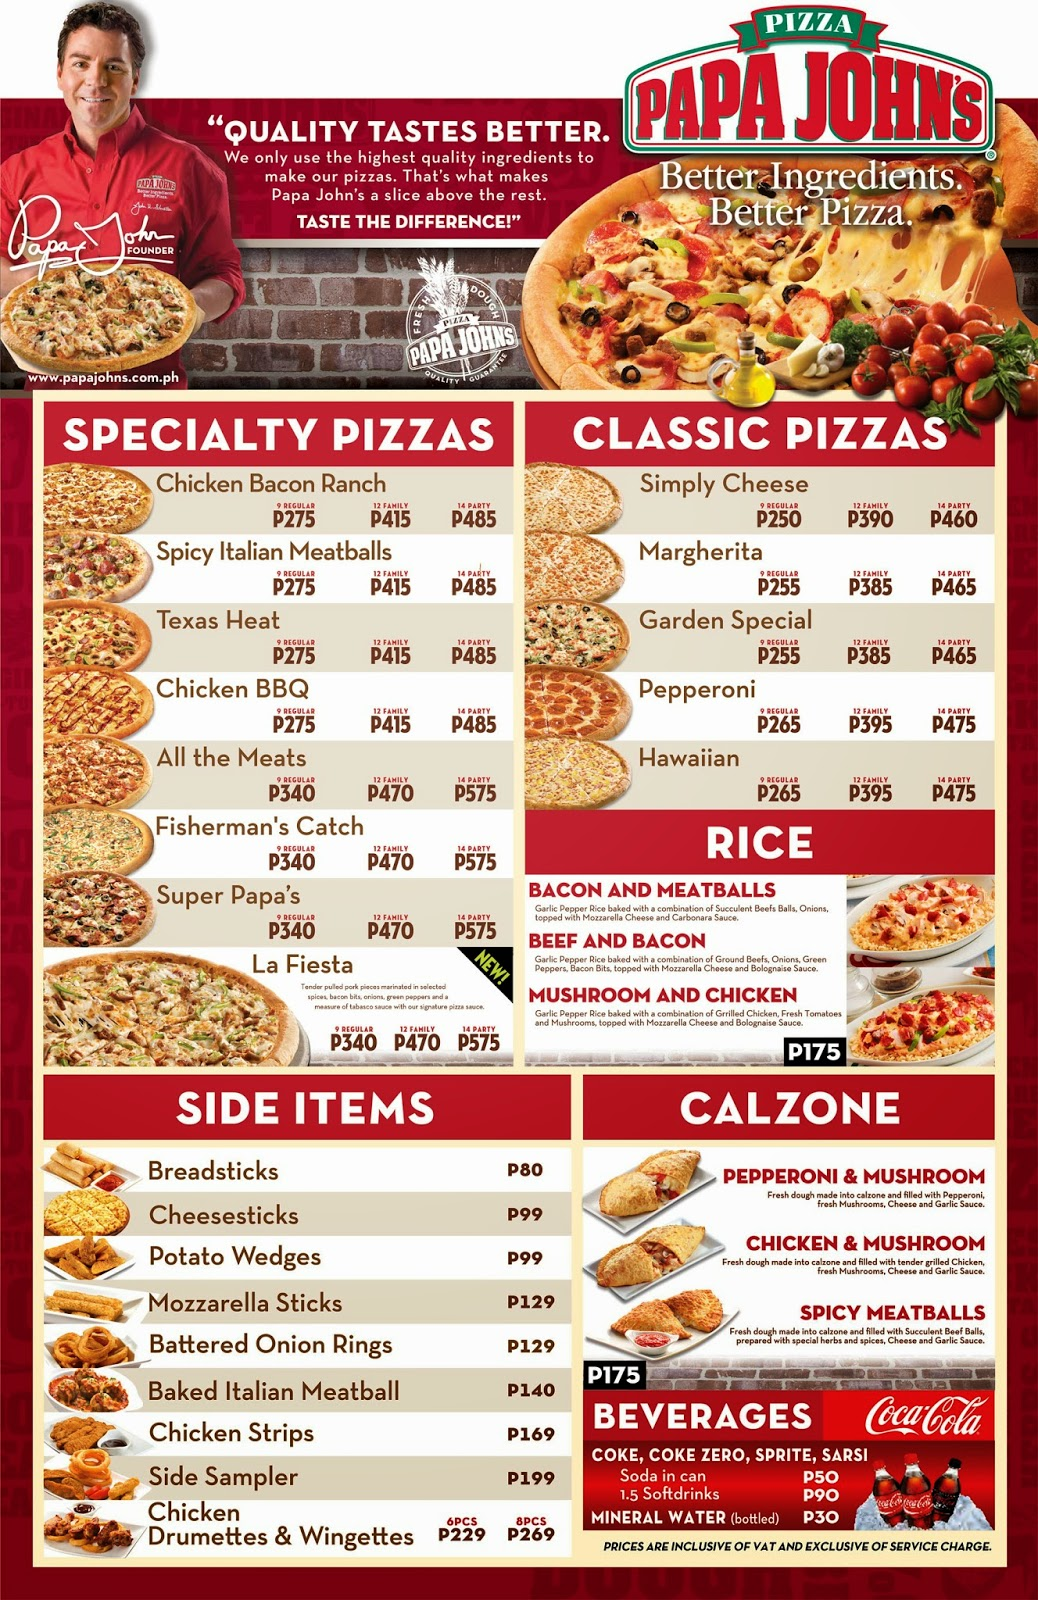 Papa Johns coupons and promo codes. Trust truezloadmw.ga for Pizza savings.